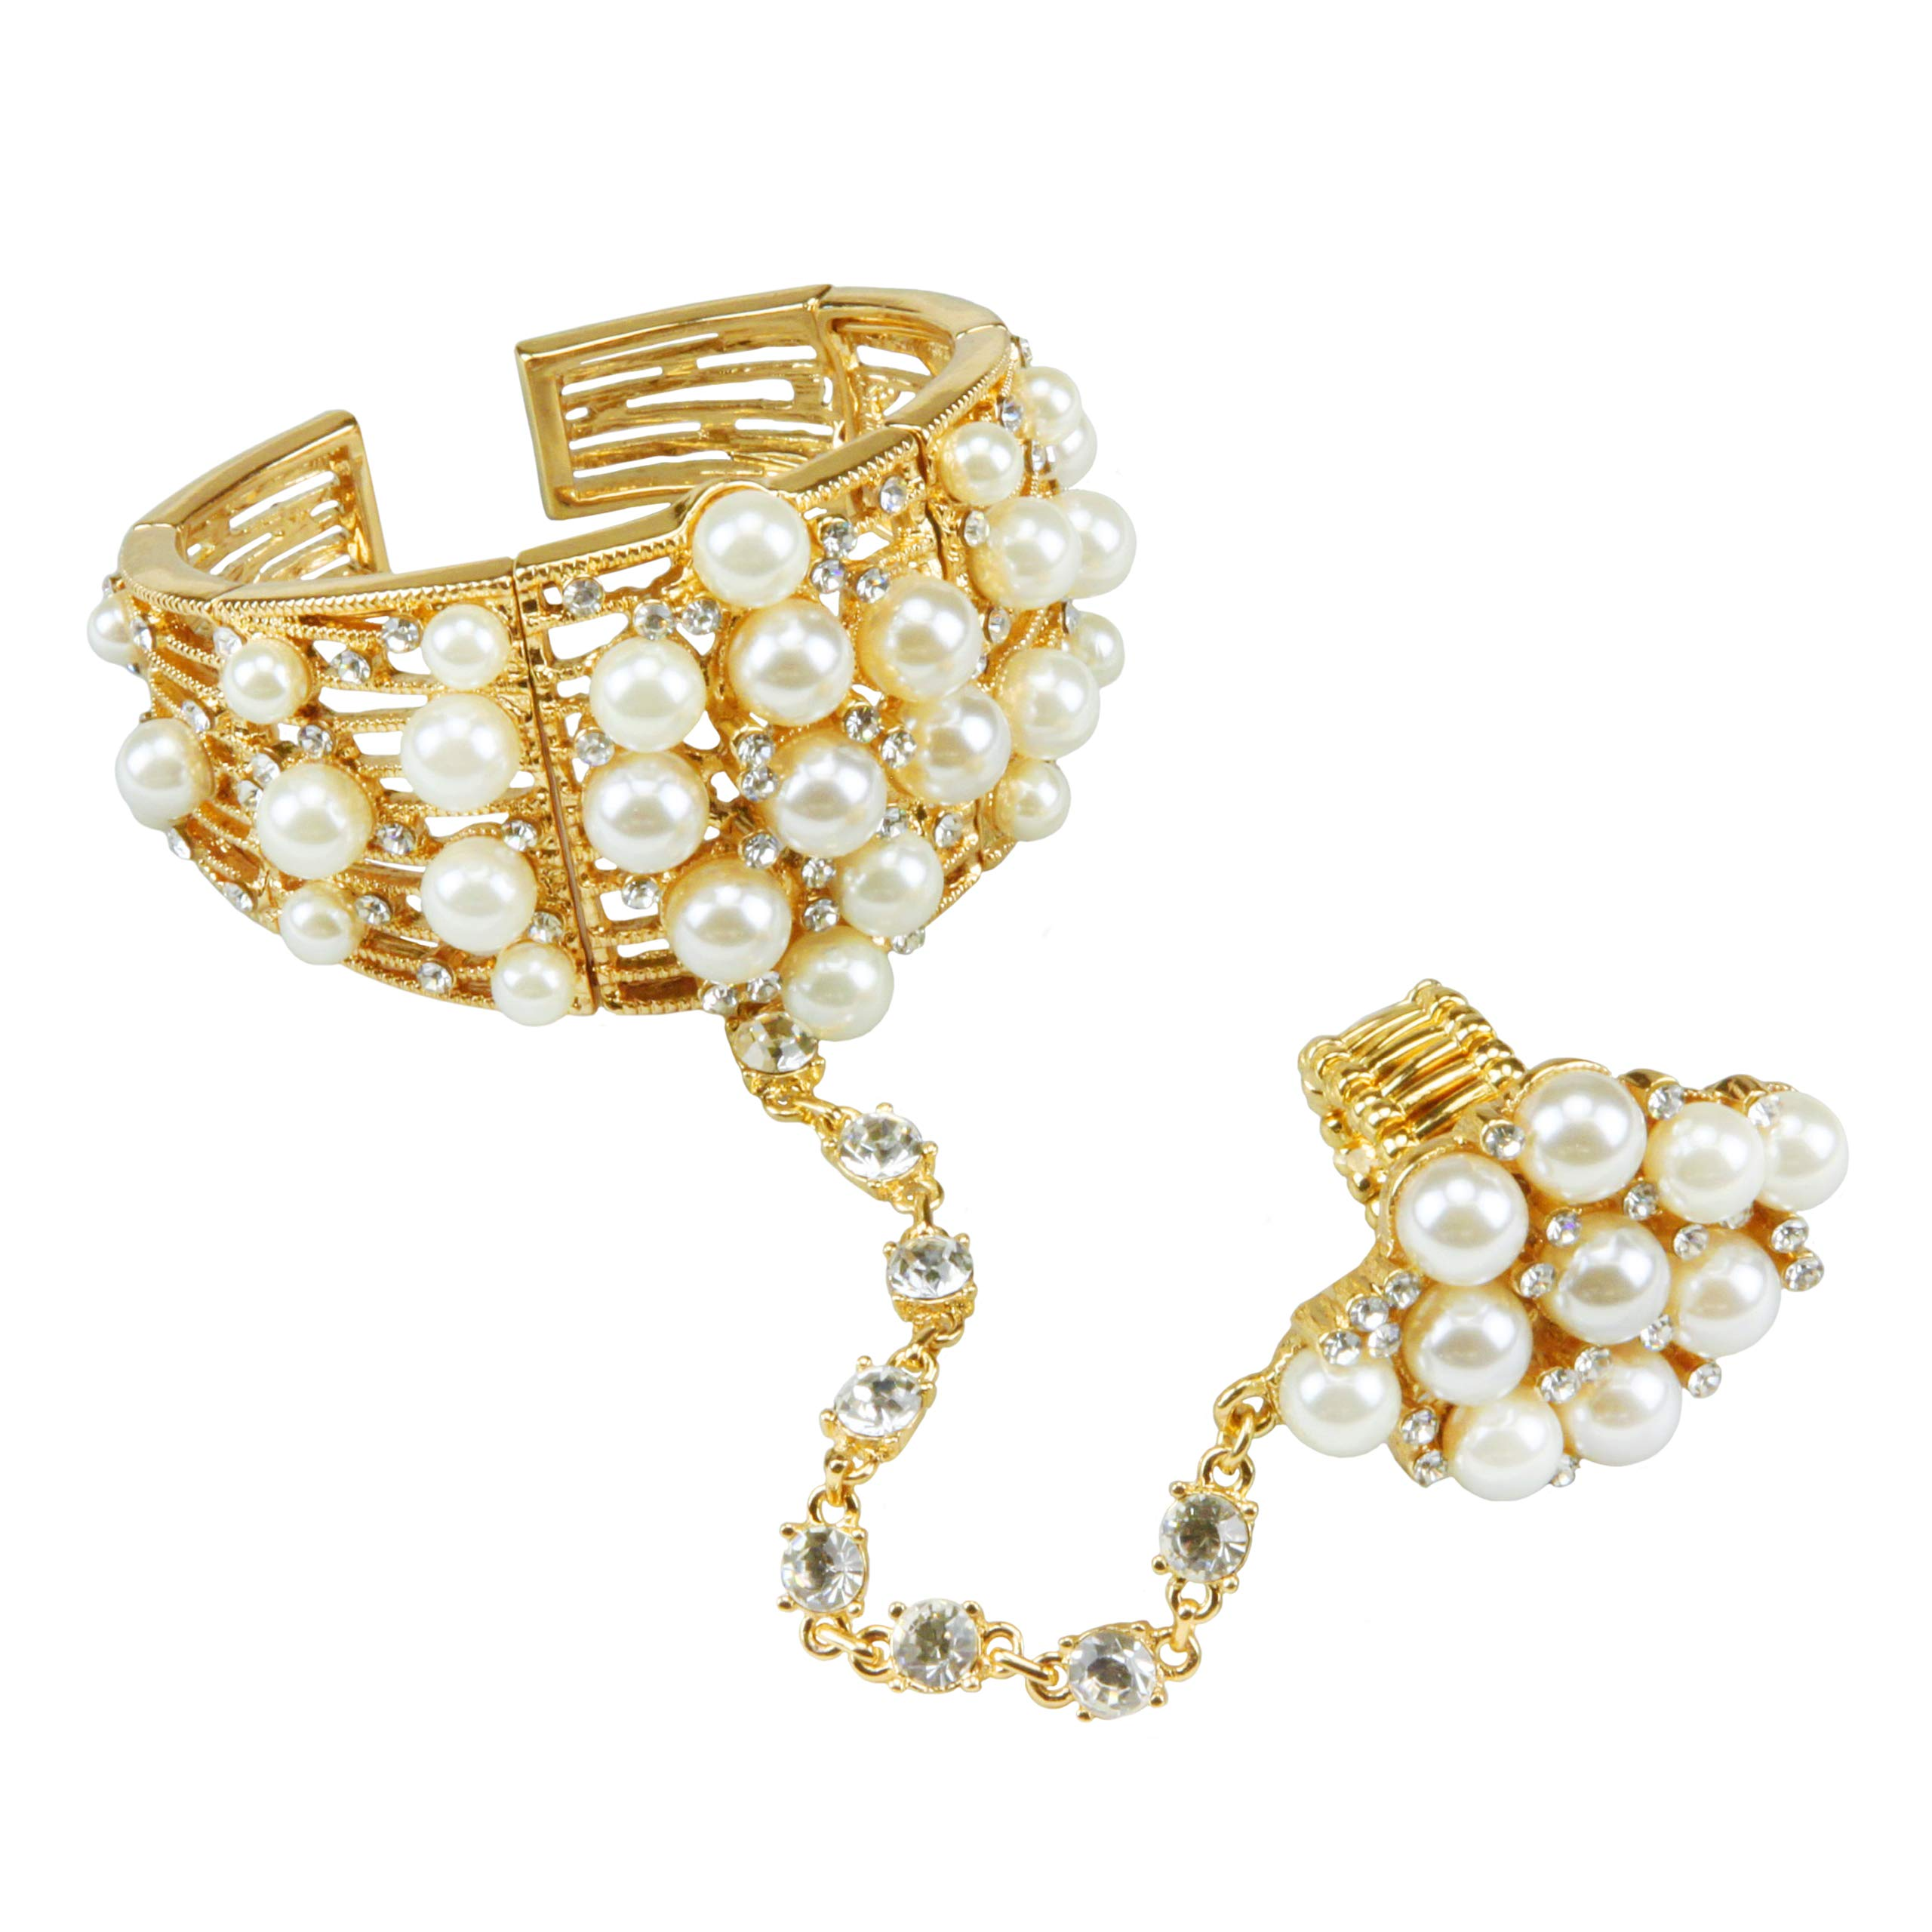 SP Sophia Collection Women's Statement Pearl and Rhinestone Cuff Bracelet Ring Chain Set